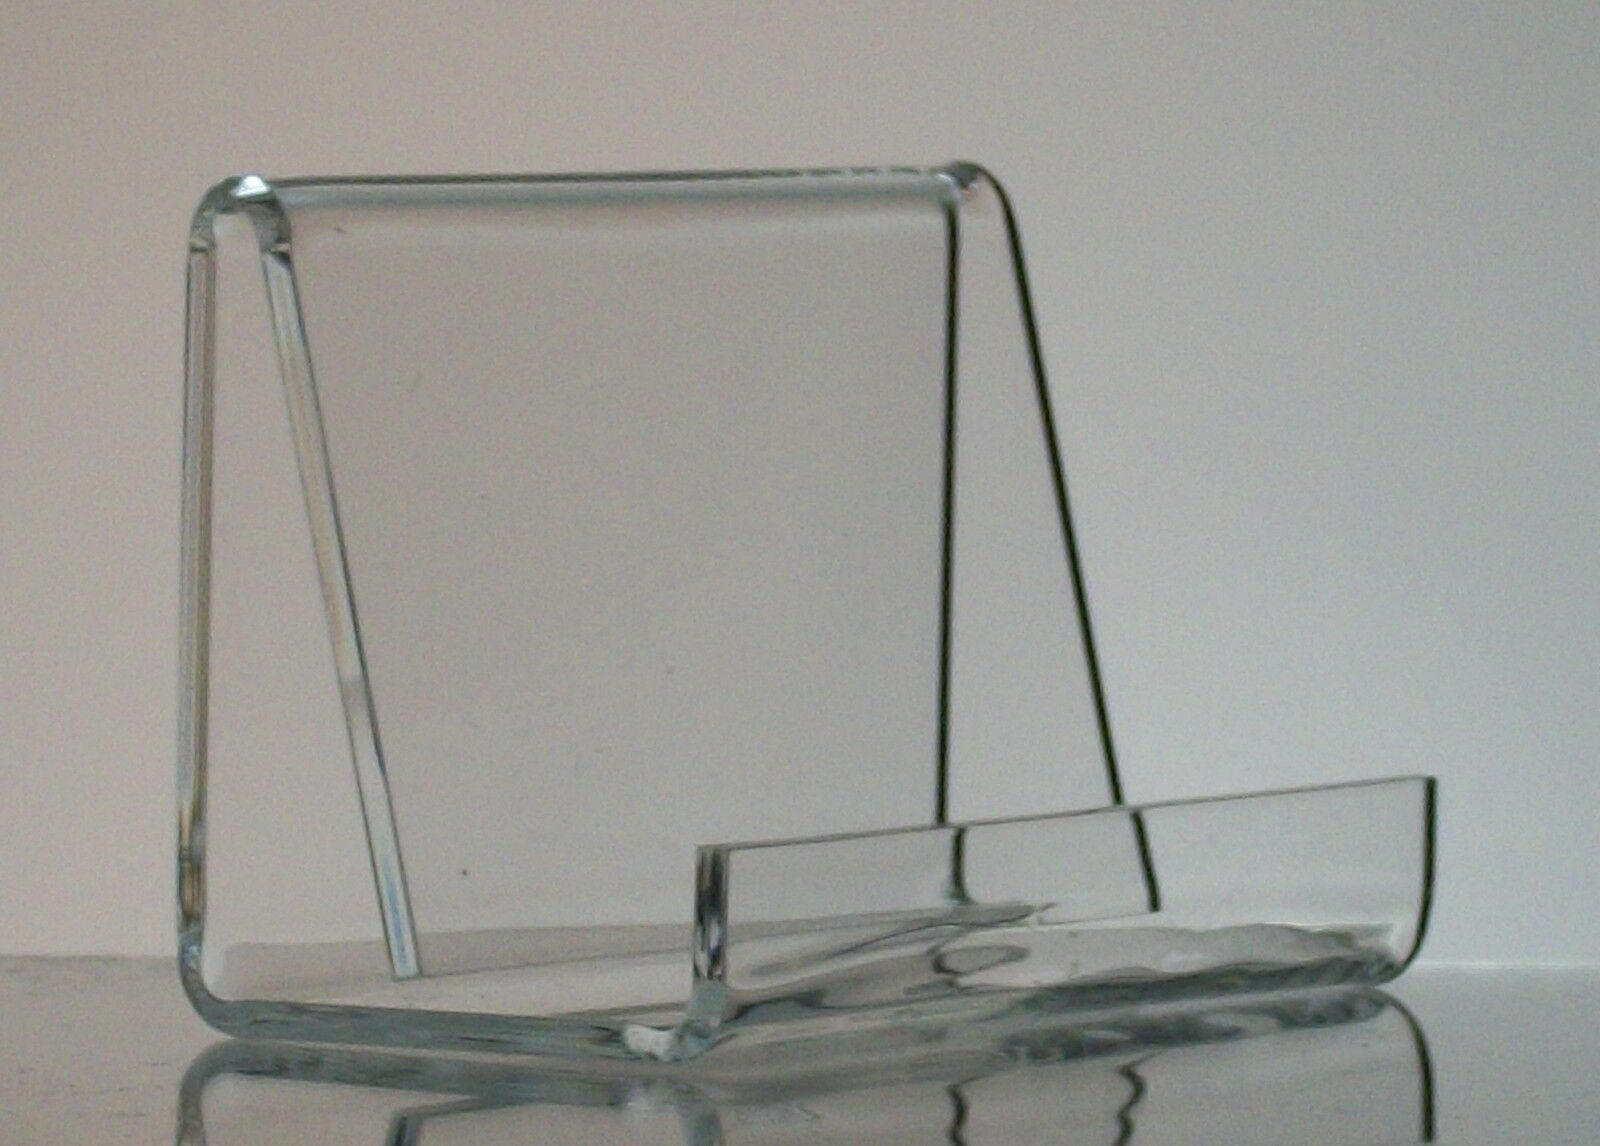 Industrial-style Acrylic Business Card Holder Display | eBay